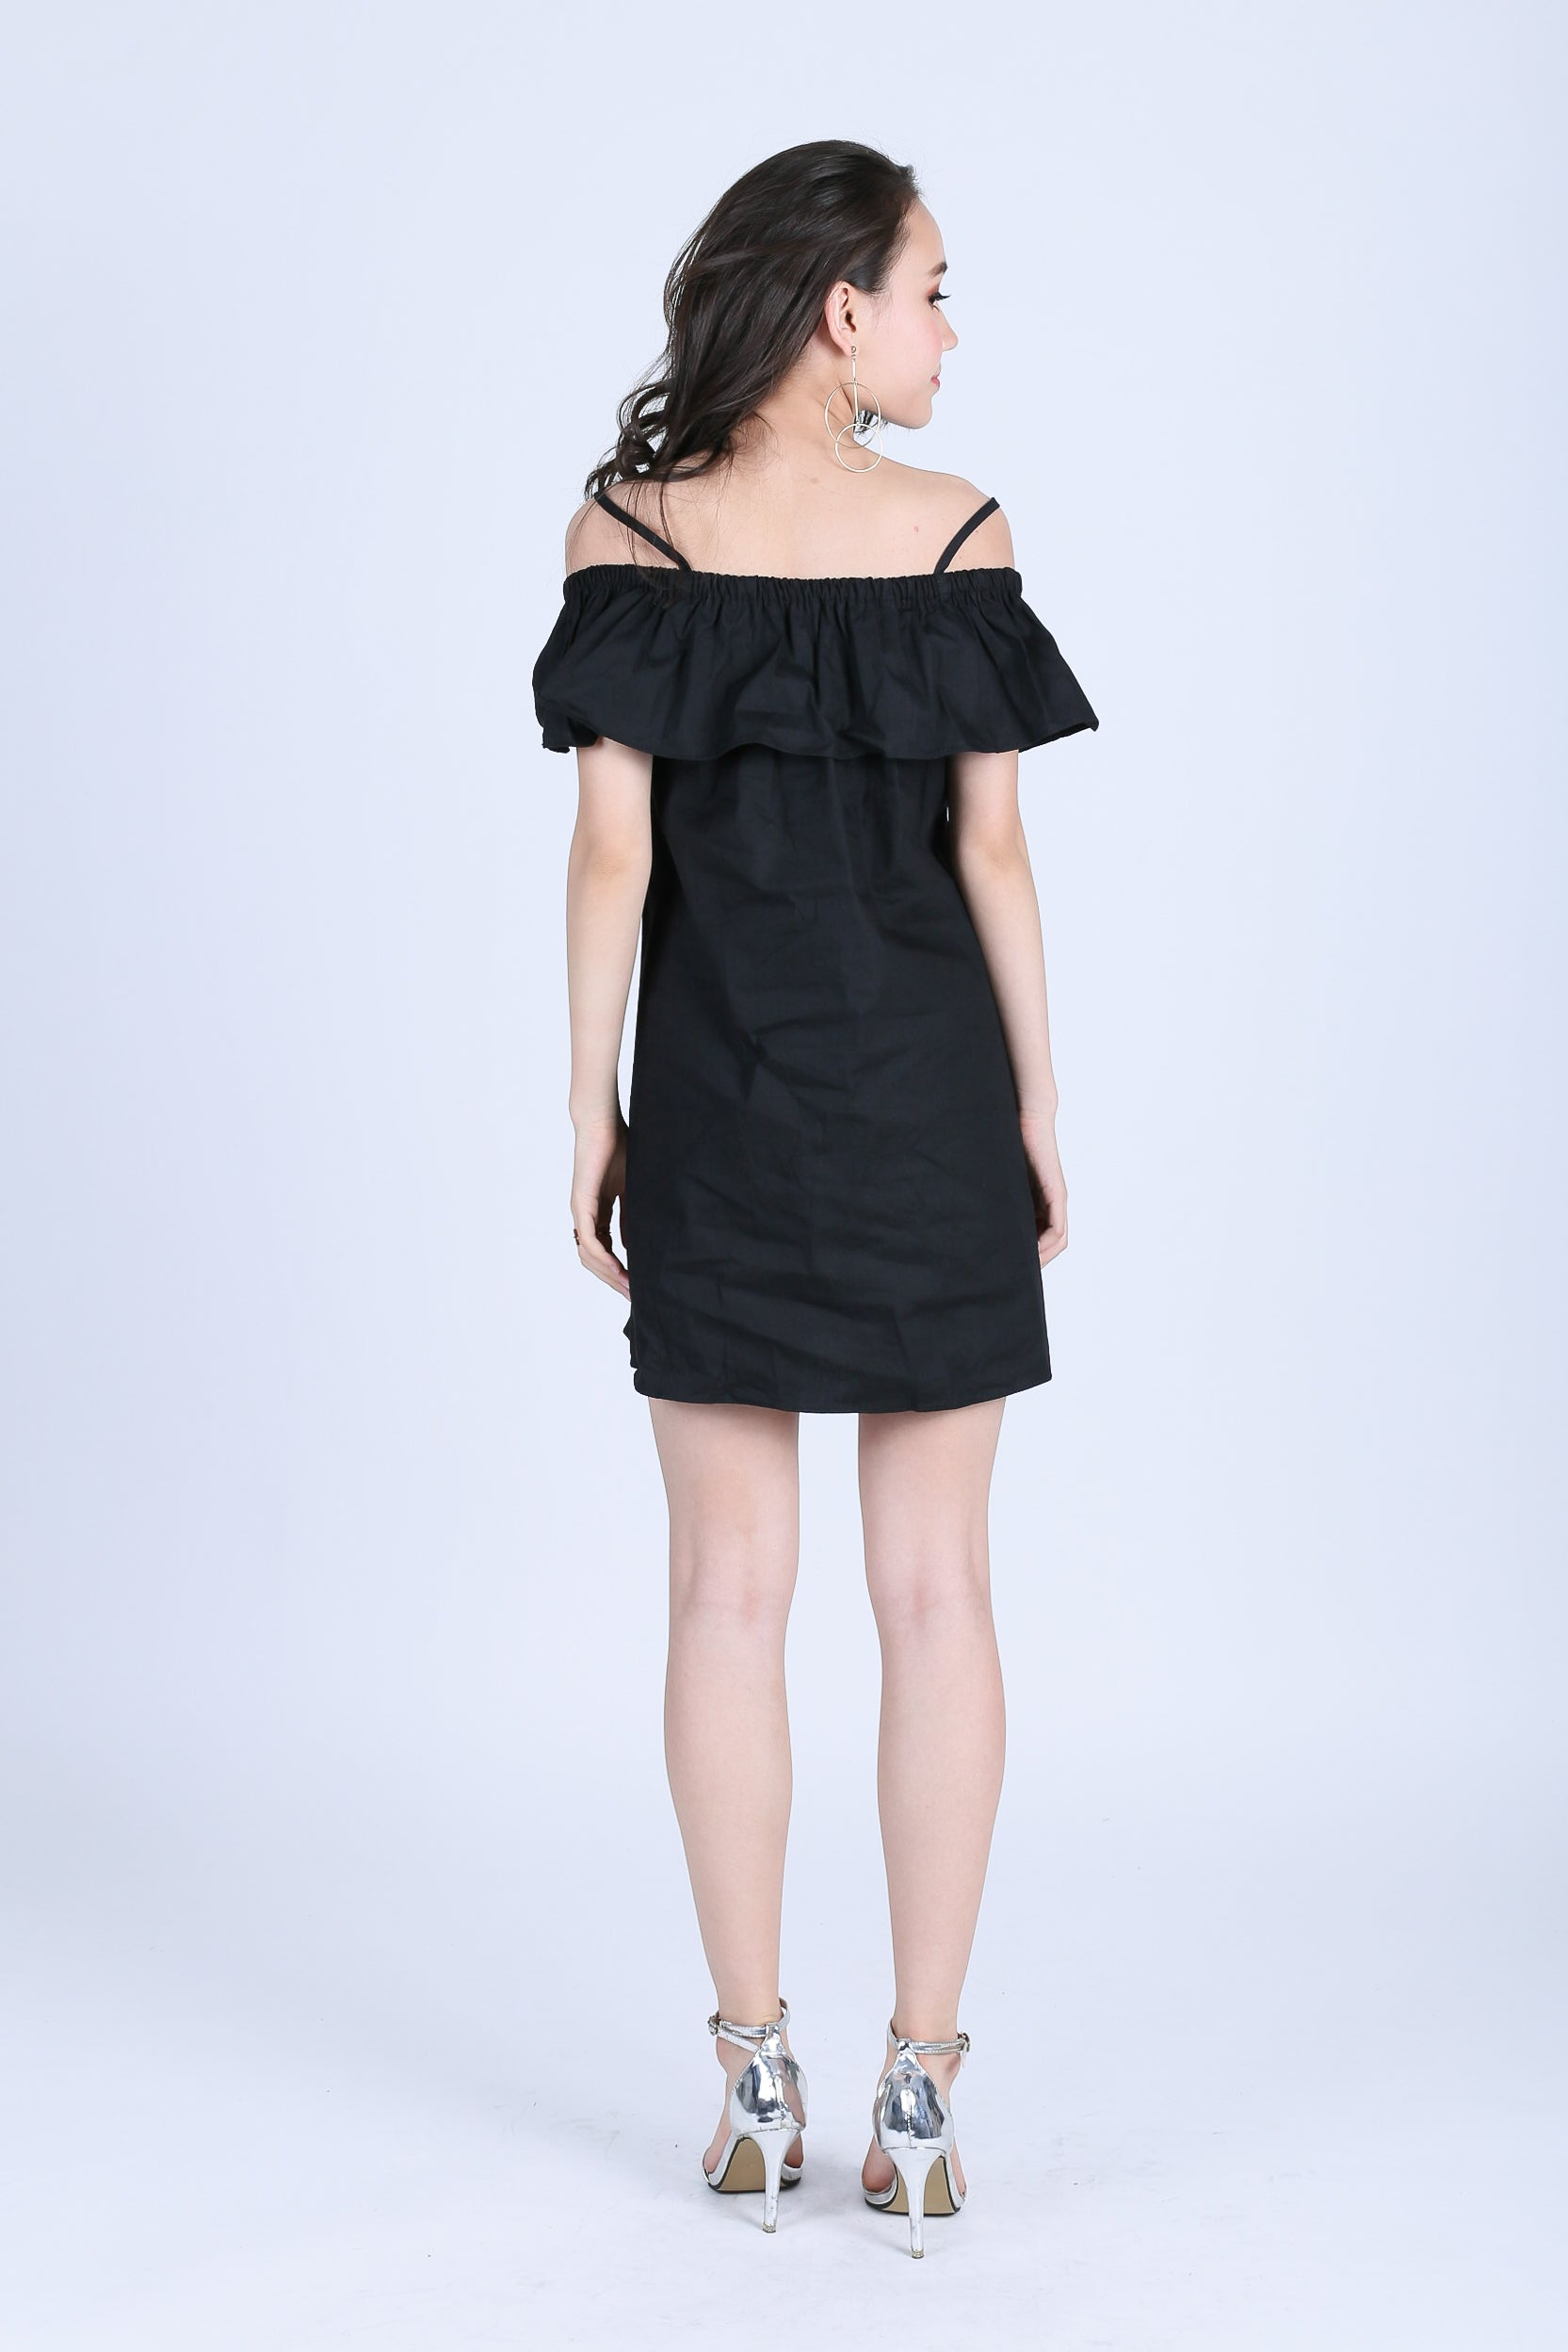 ADLEY EMBROIDERY DRESS IN BLACK